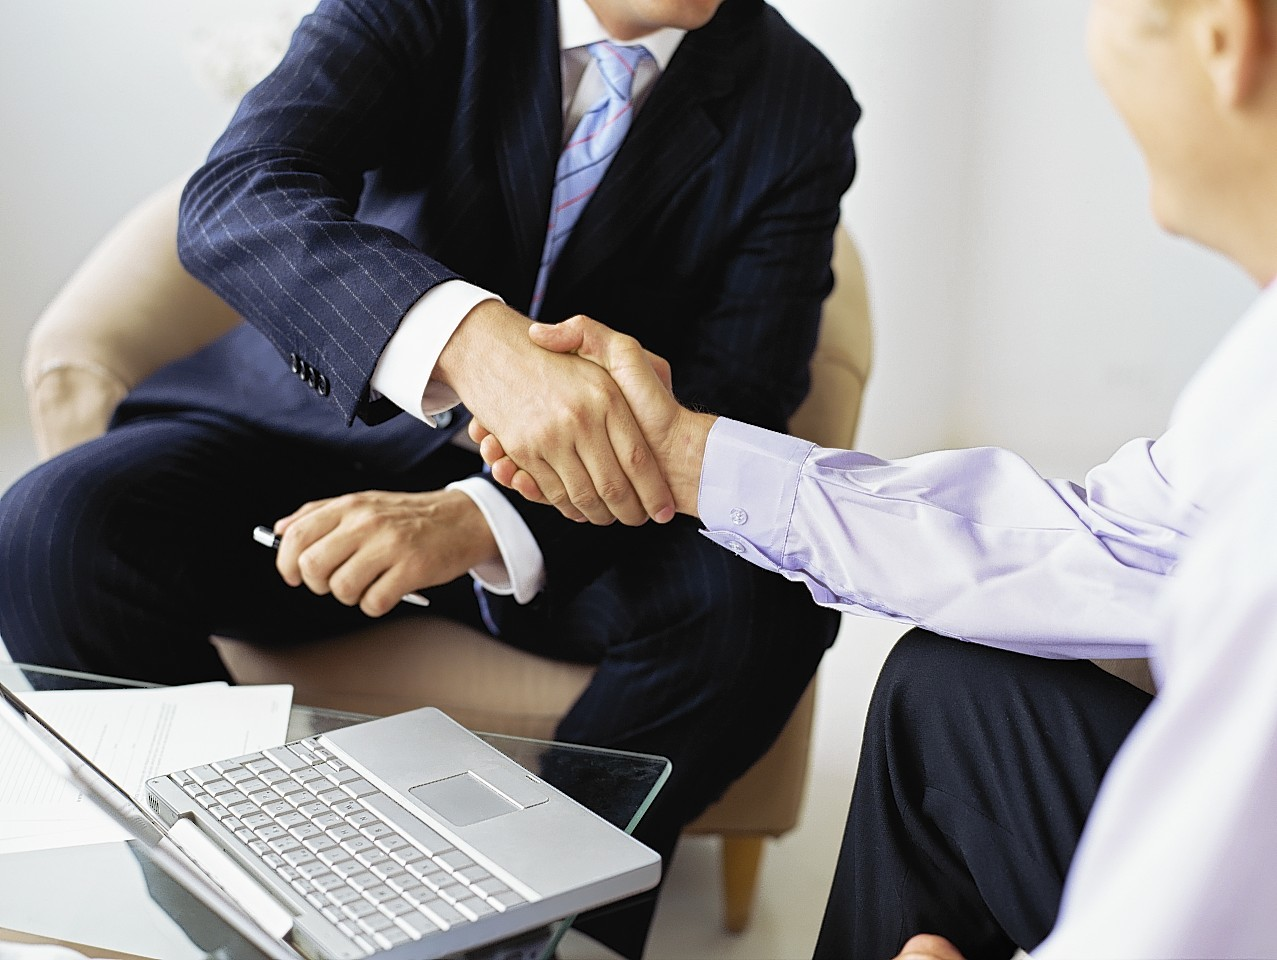 Shaking hands on a pre-pack deal after a  firm goes bust  often causes controvery